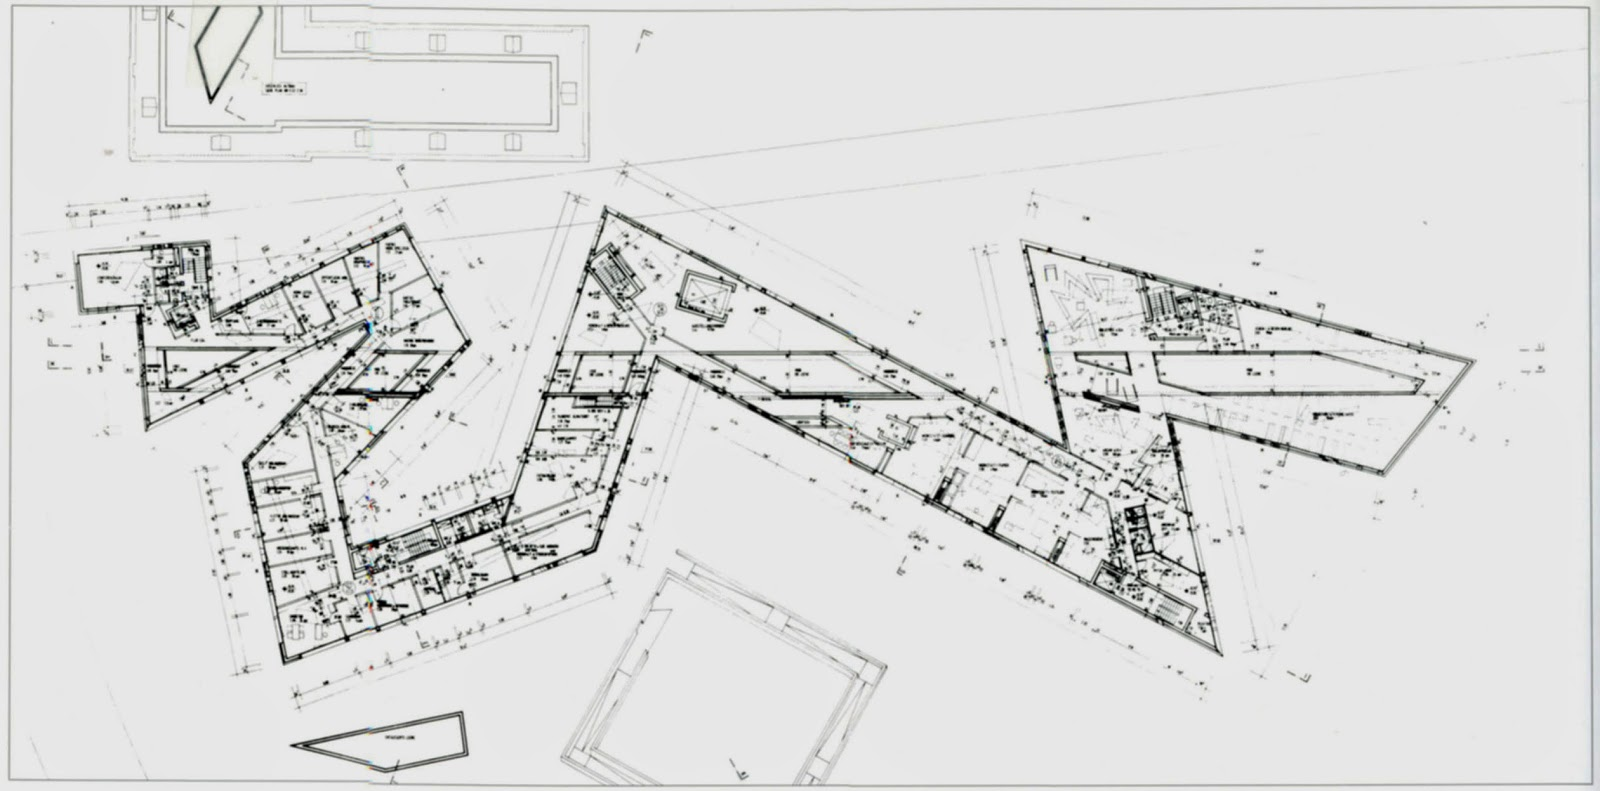 Full Page Coloring Pages likewise House Sketch Sketches And Architect together with Clipart 14543 additionally Clipart Large Black Vine additionally Fairy. on pea christmas tree html